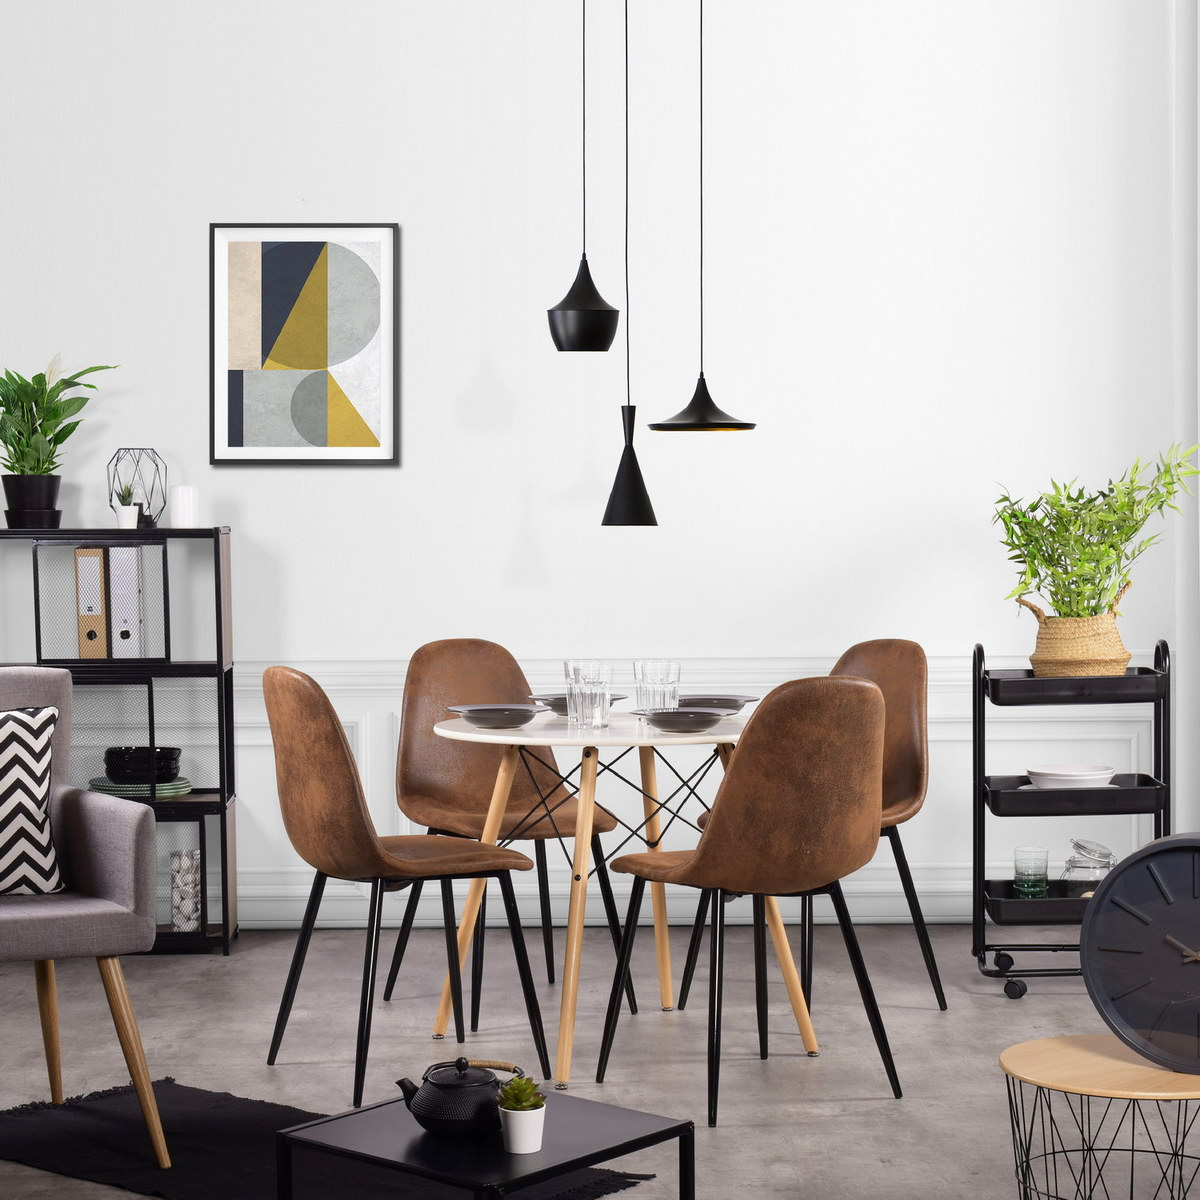 Details about 4PCS Scandinavian Style Retro Suede Material Brown Living  Room Dining Chairs